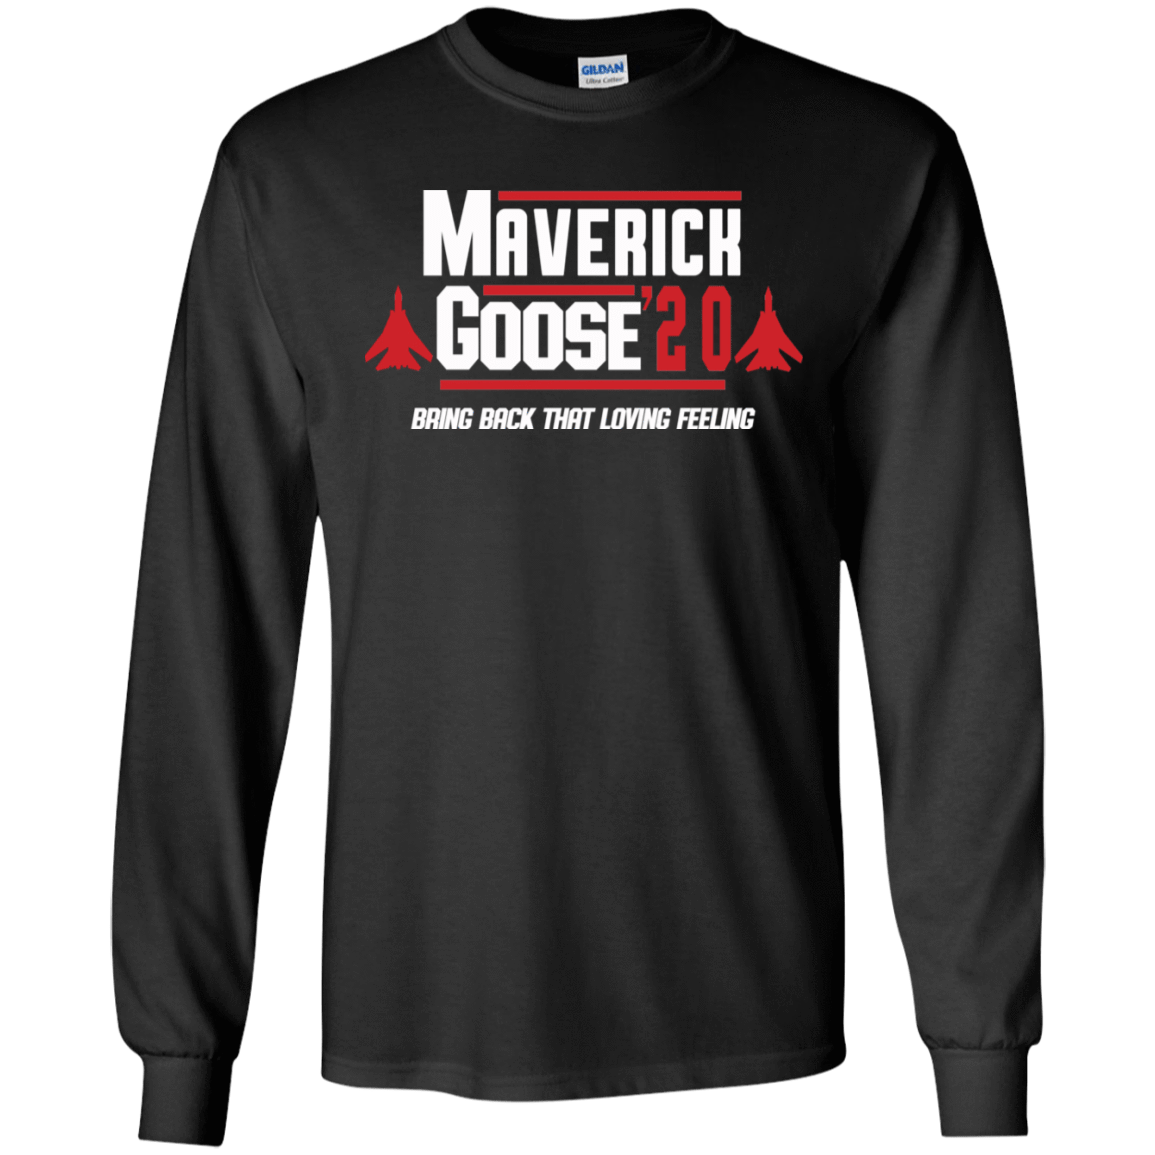 Maverick Goose 2020 Bring Bach That Loving Feeling 30-186-71994273-333 - Tee Ript